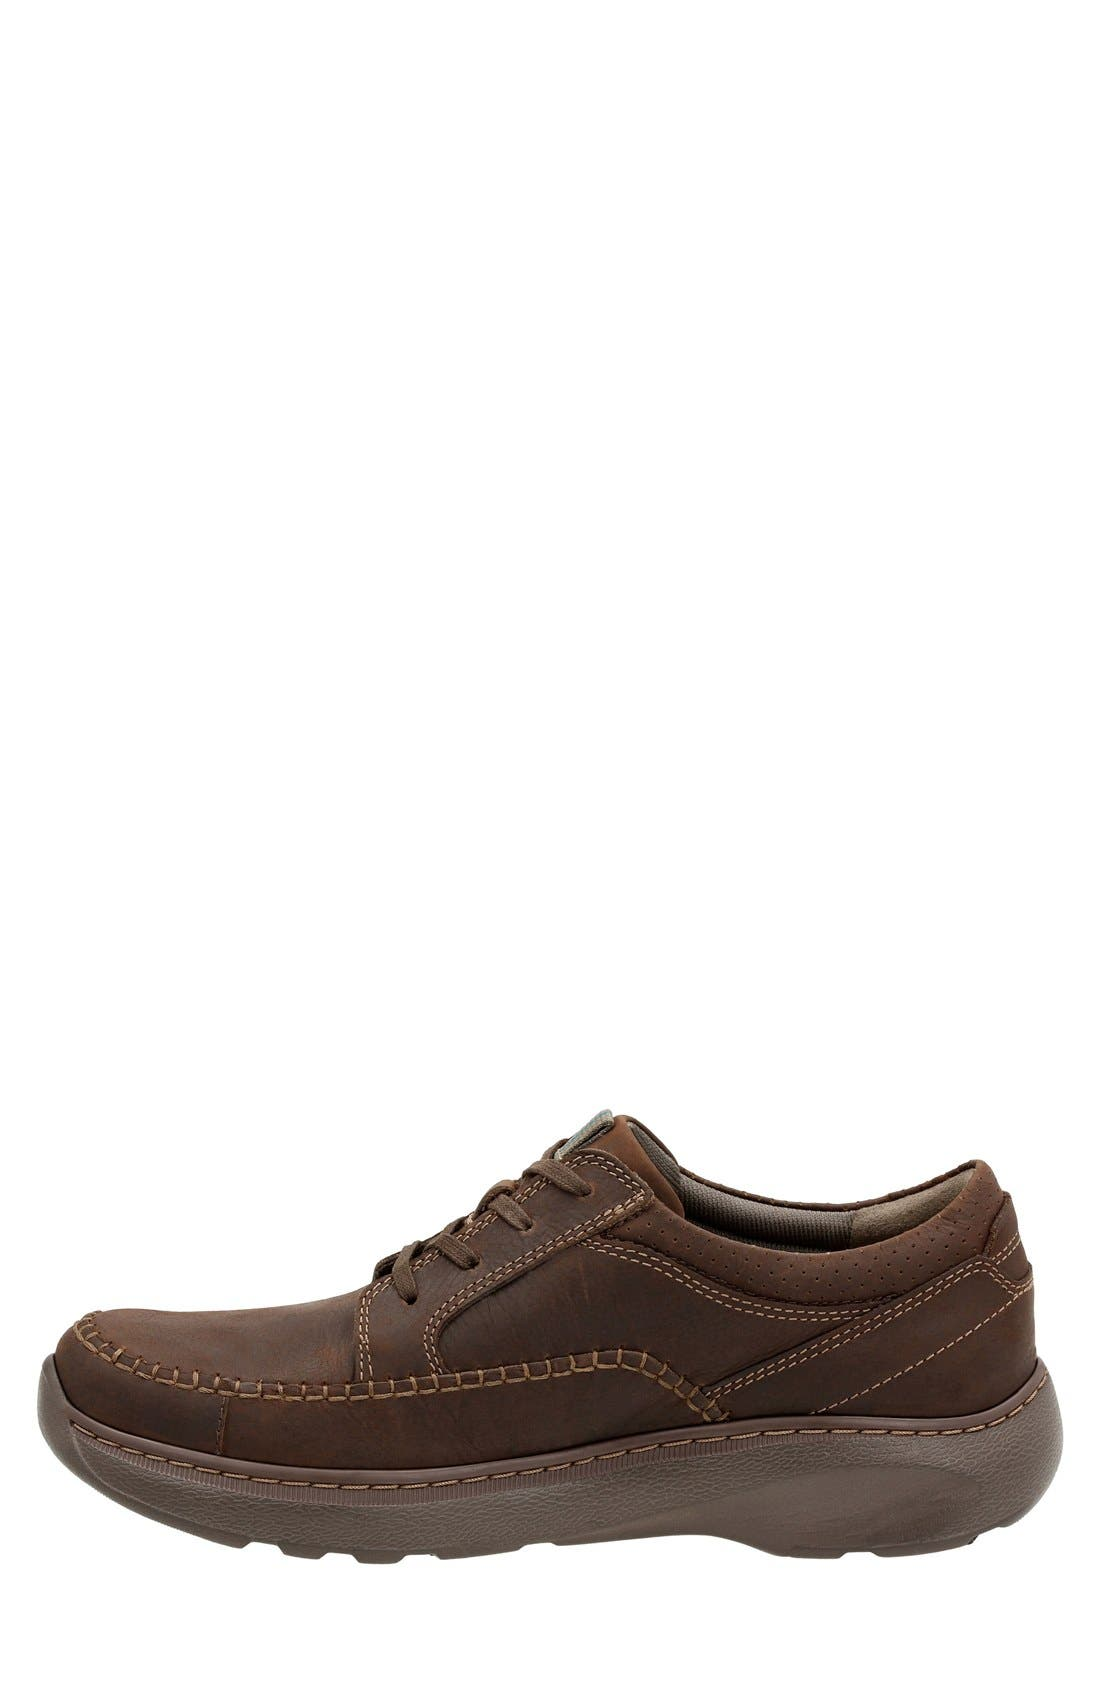 'Charton Vibe' Moc Toe Derby,                             Alternate thumbnail 2, color,                             Dark Brown